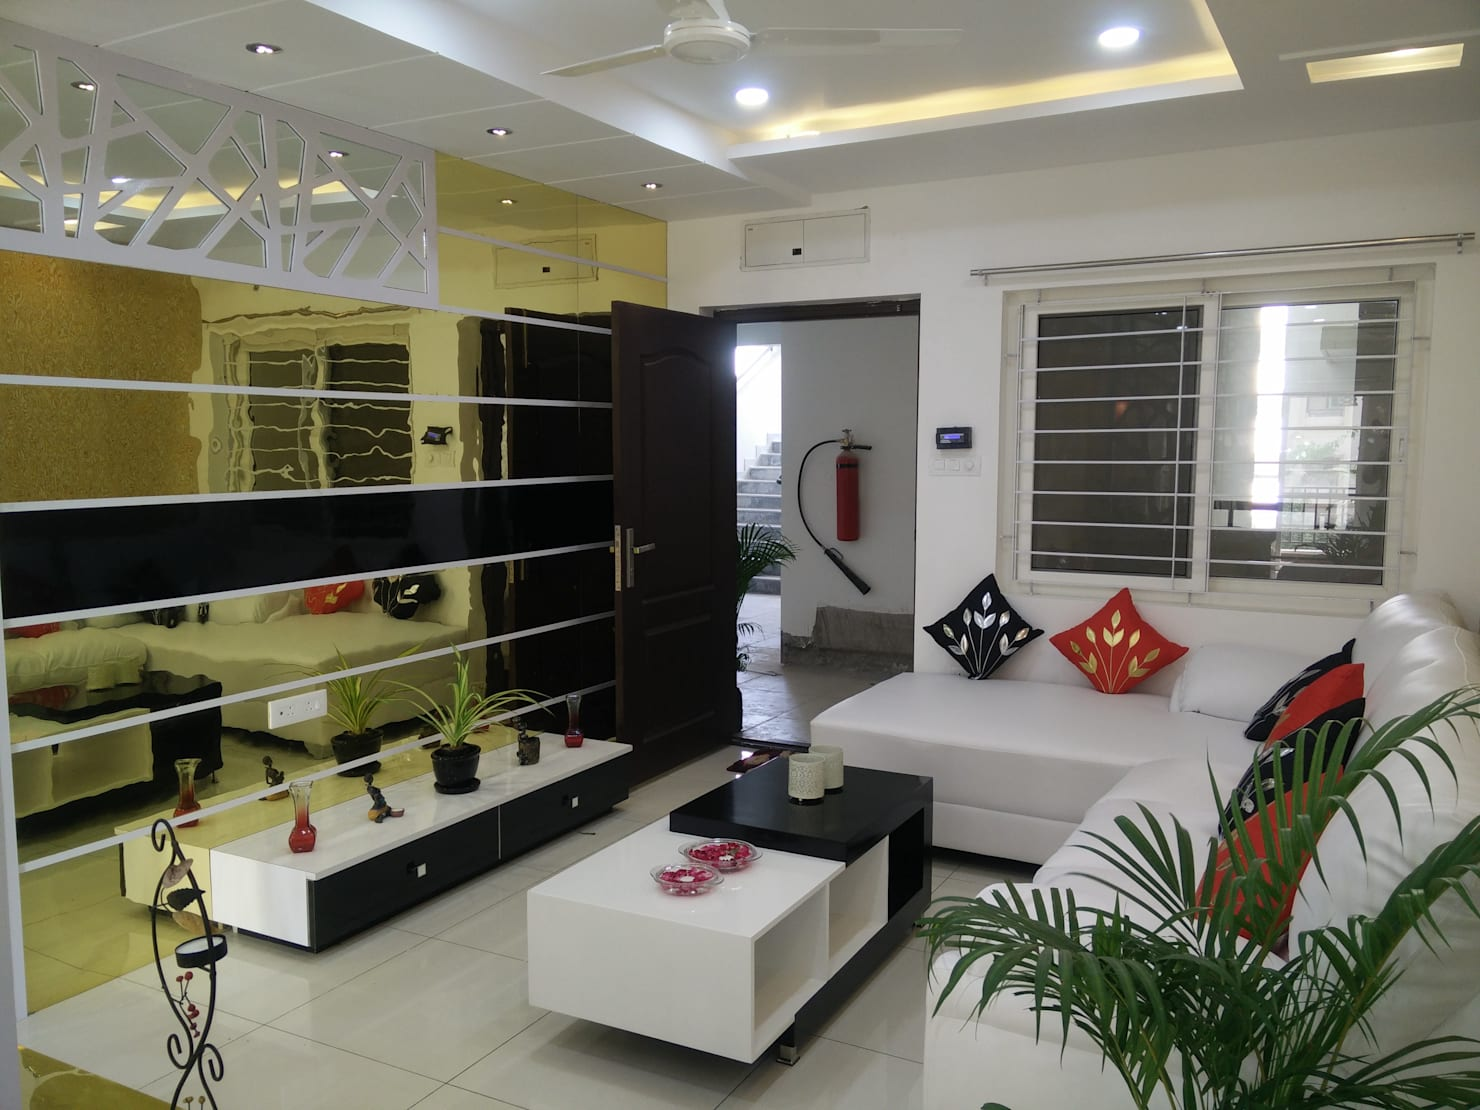 Home furnishing ideas from a 3bhk home in Hyderabad